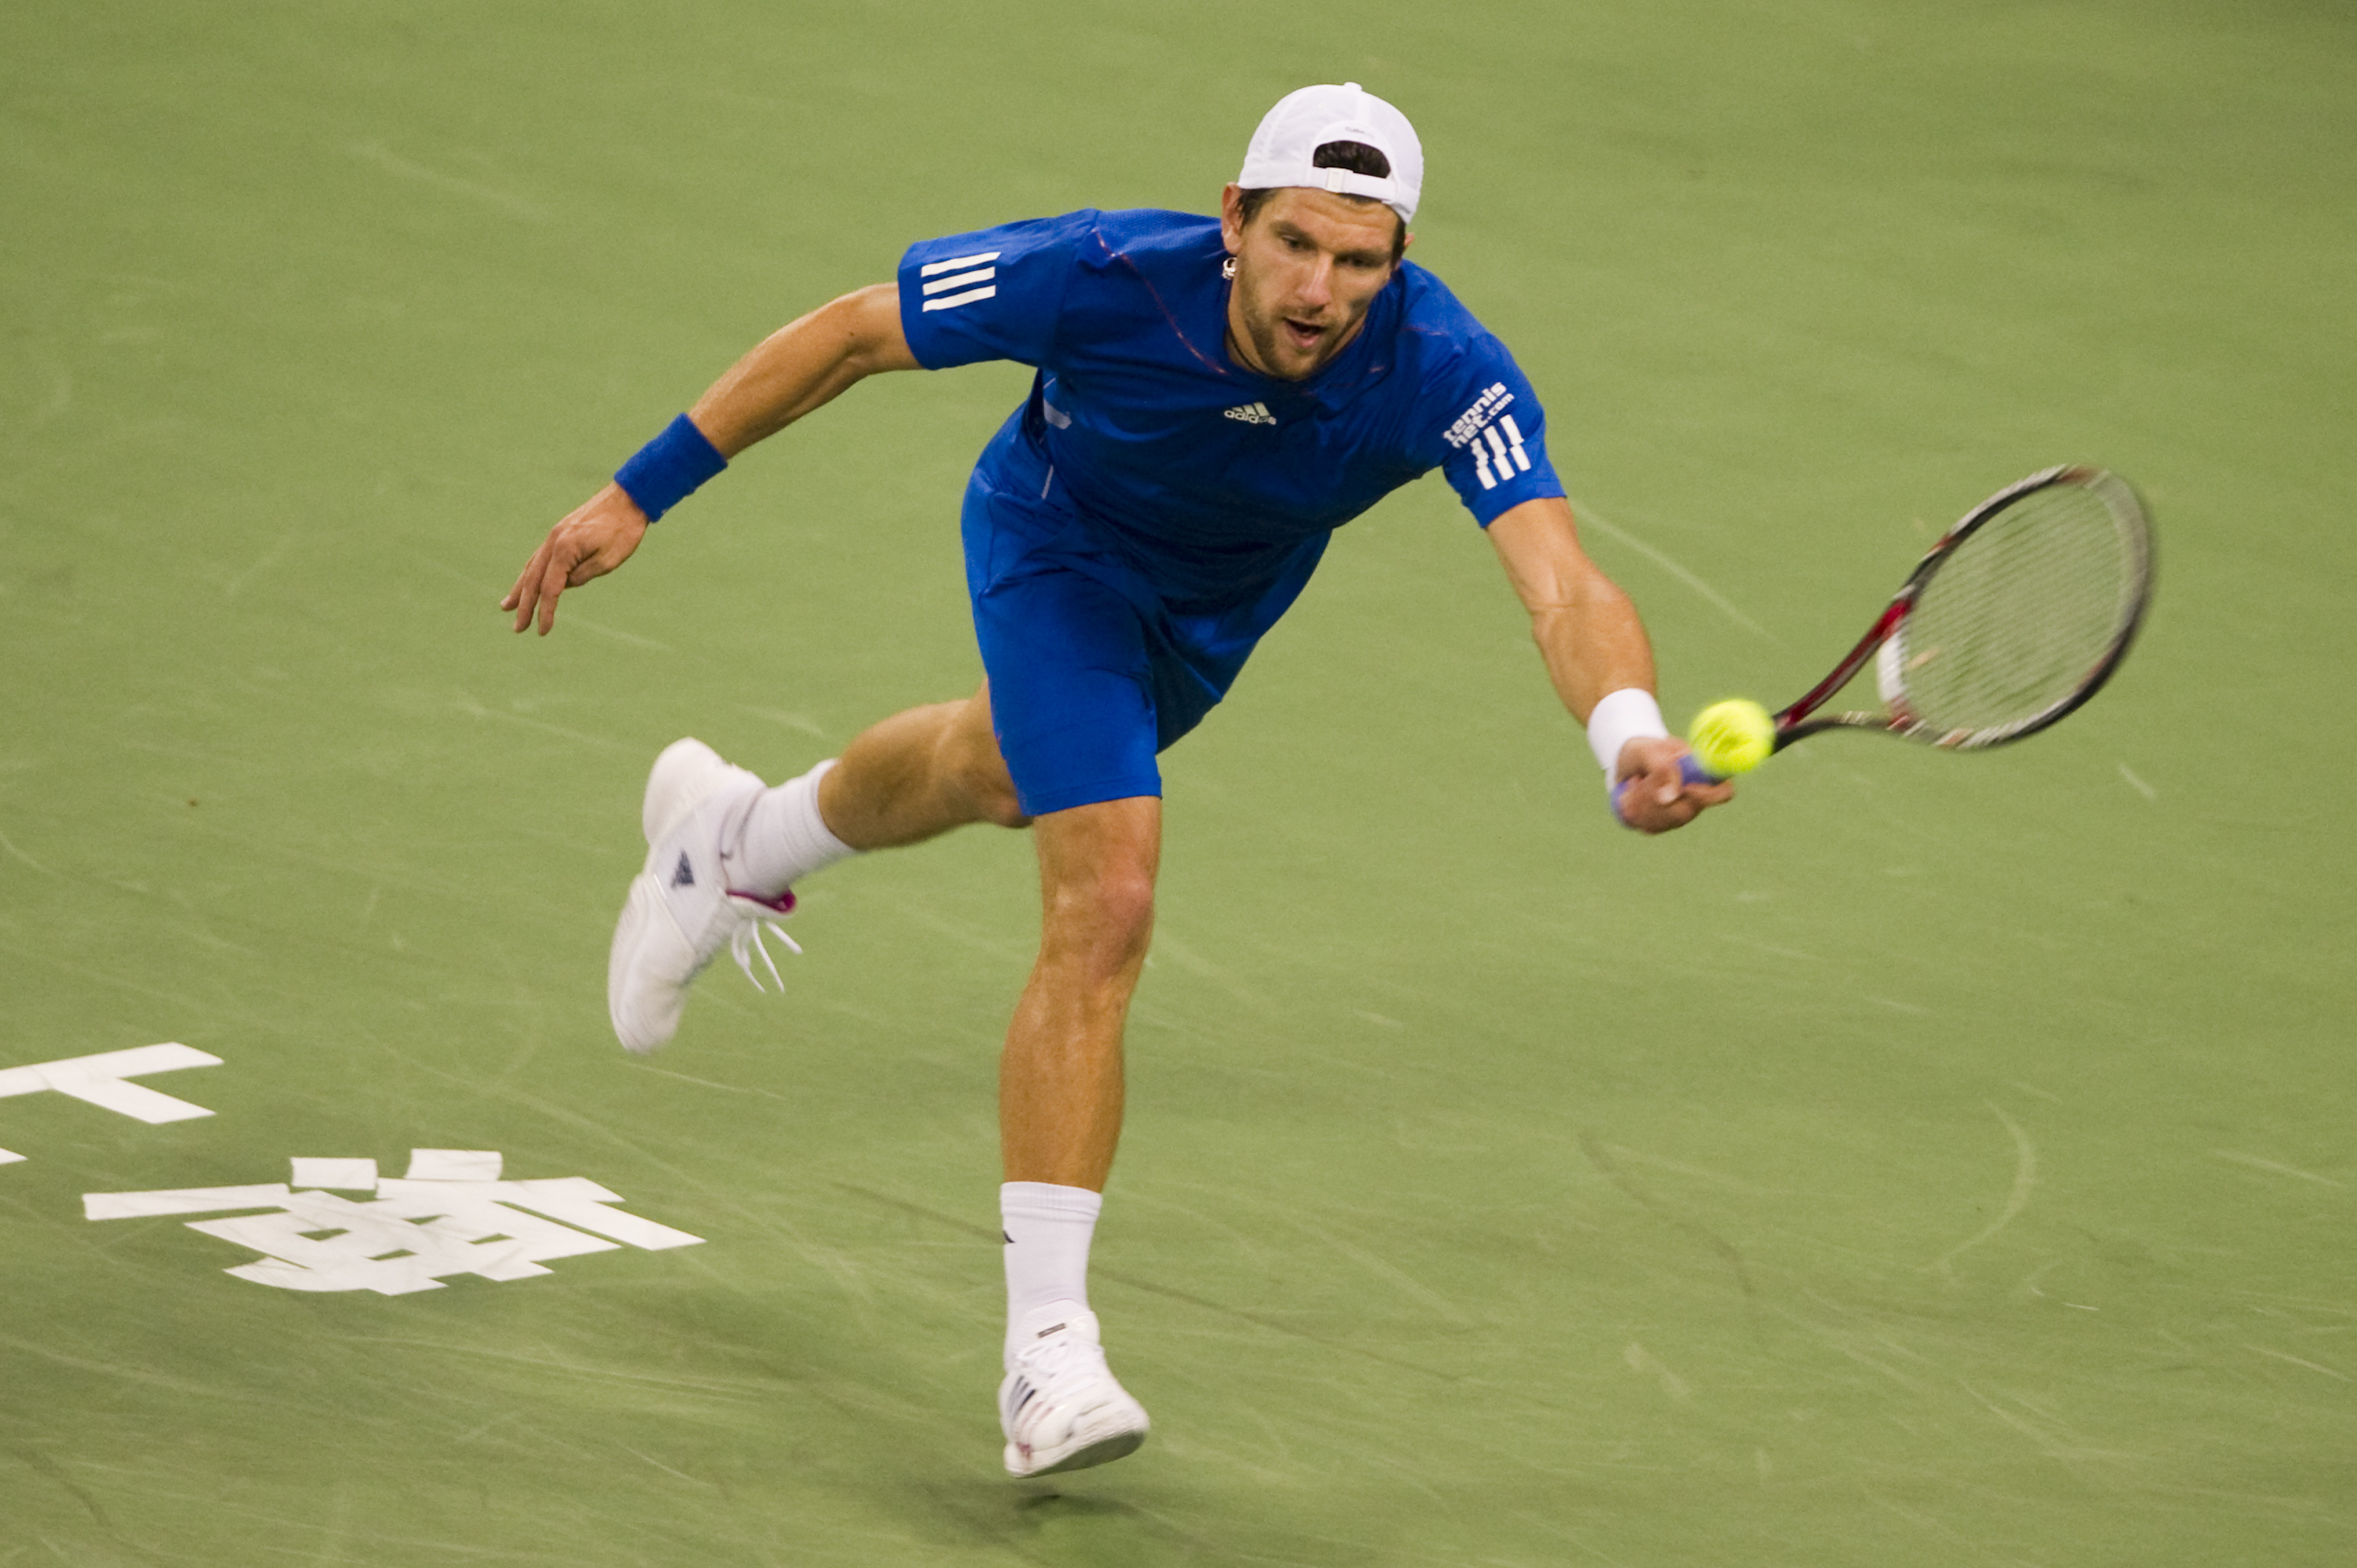 SHANGHAI, CHINA - OCTOBER 15:  Jurgen Melzer of Austria returns a ball to Juan Monaco of Argentina during day five of the 2010 Shanghai Rolex Masters at the Shanghai Qi Zhong Tennis Center on October 15, 2010 in Shanghai, China.  (Photo by Victor Fraile/G